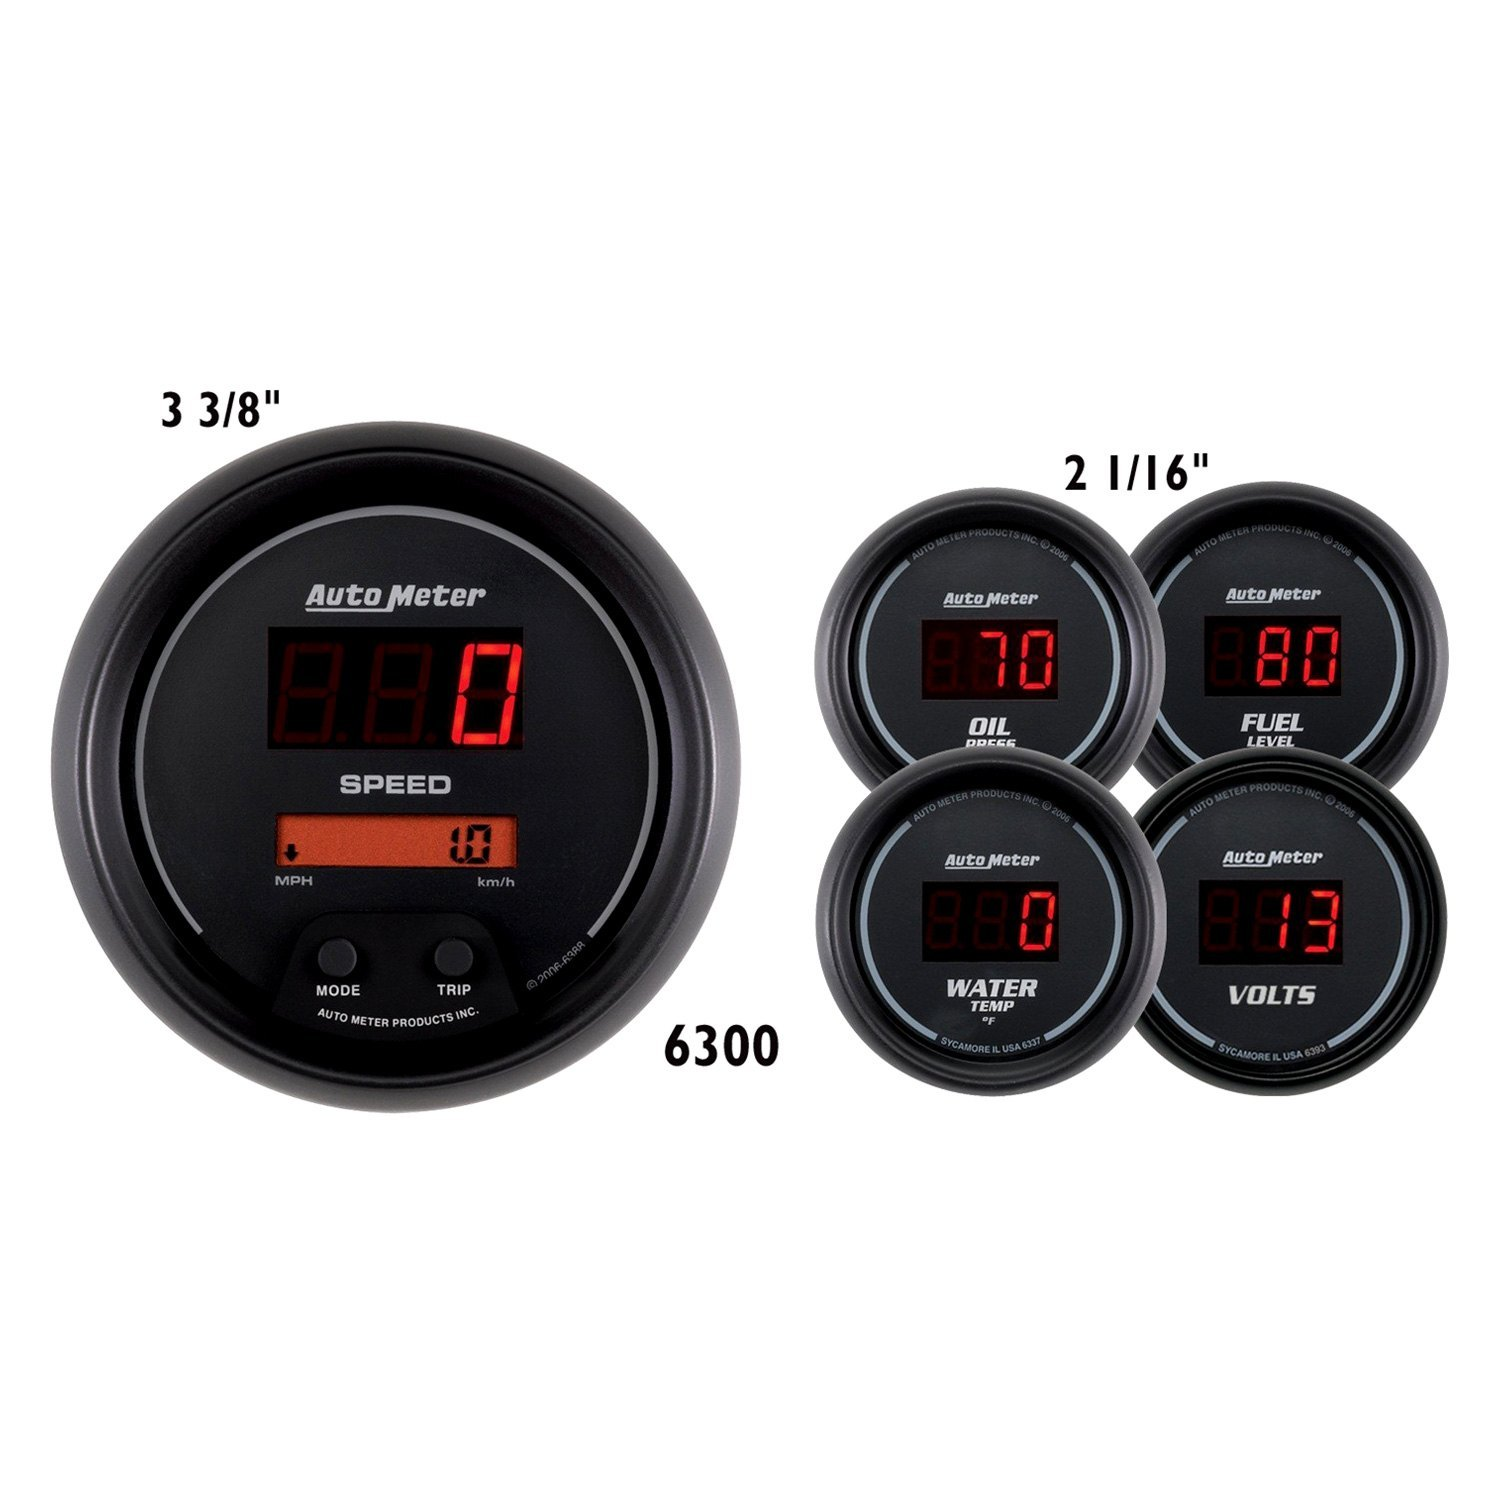 Electronic Gauges For Cars : Auto meter electronic dash free engine image for